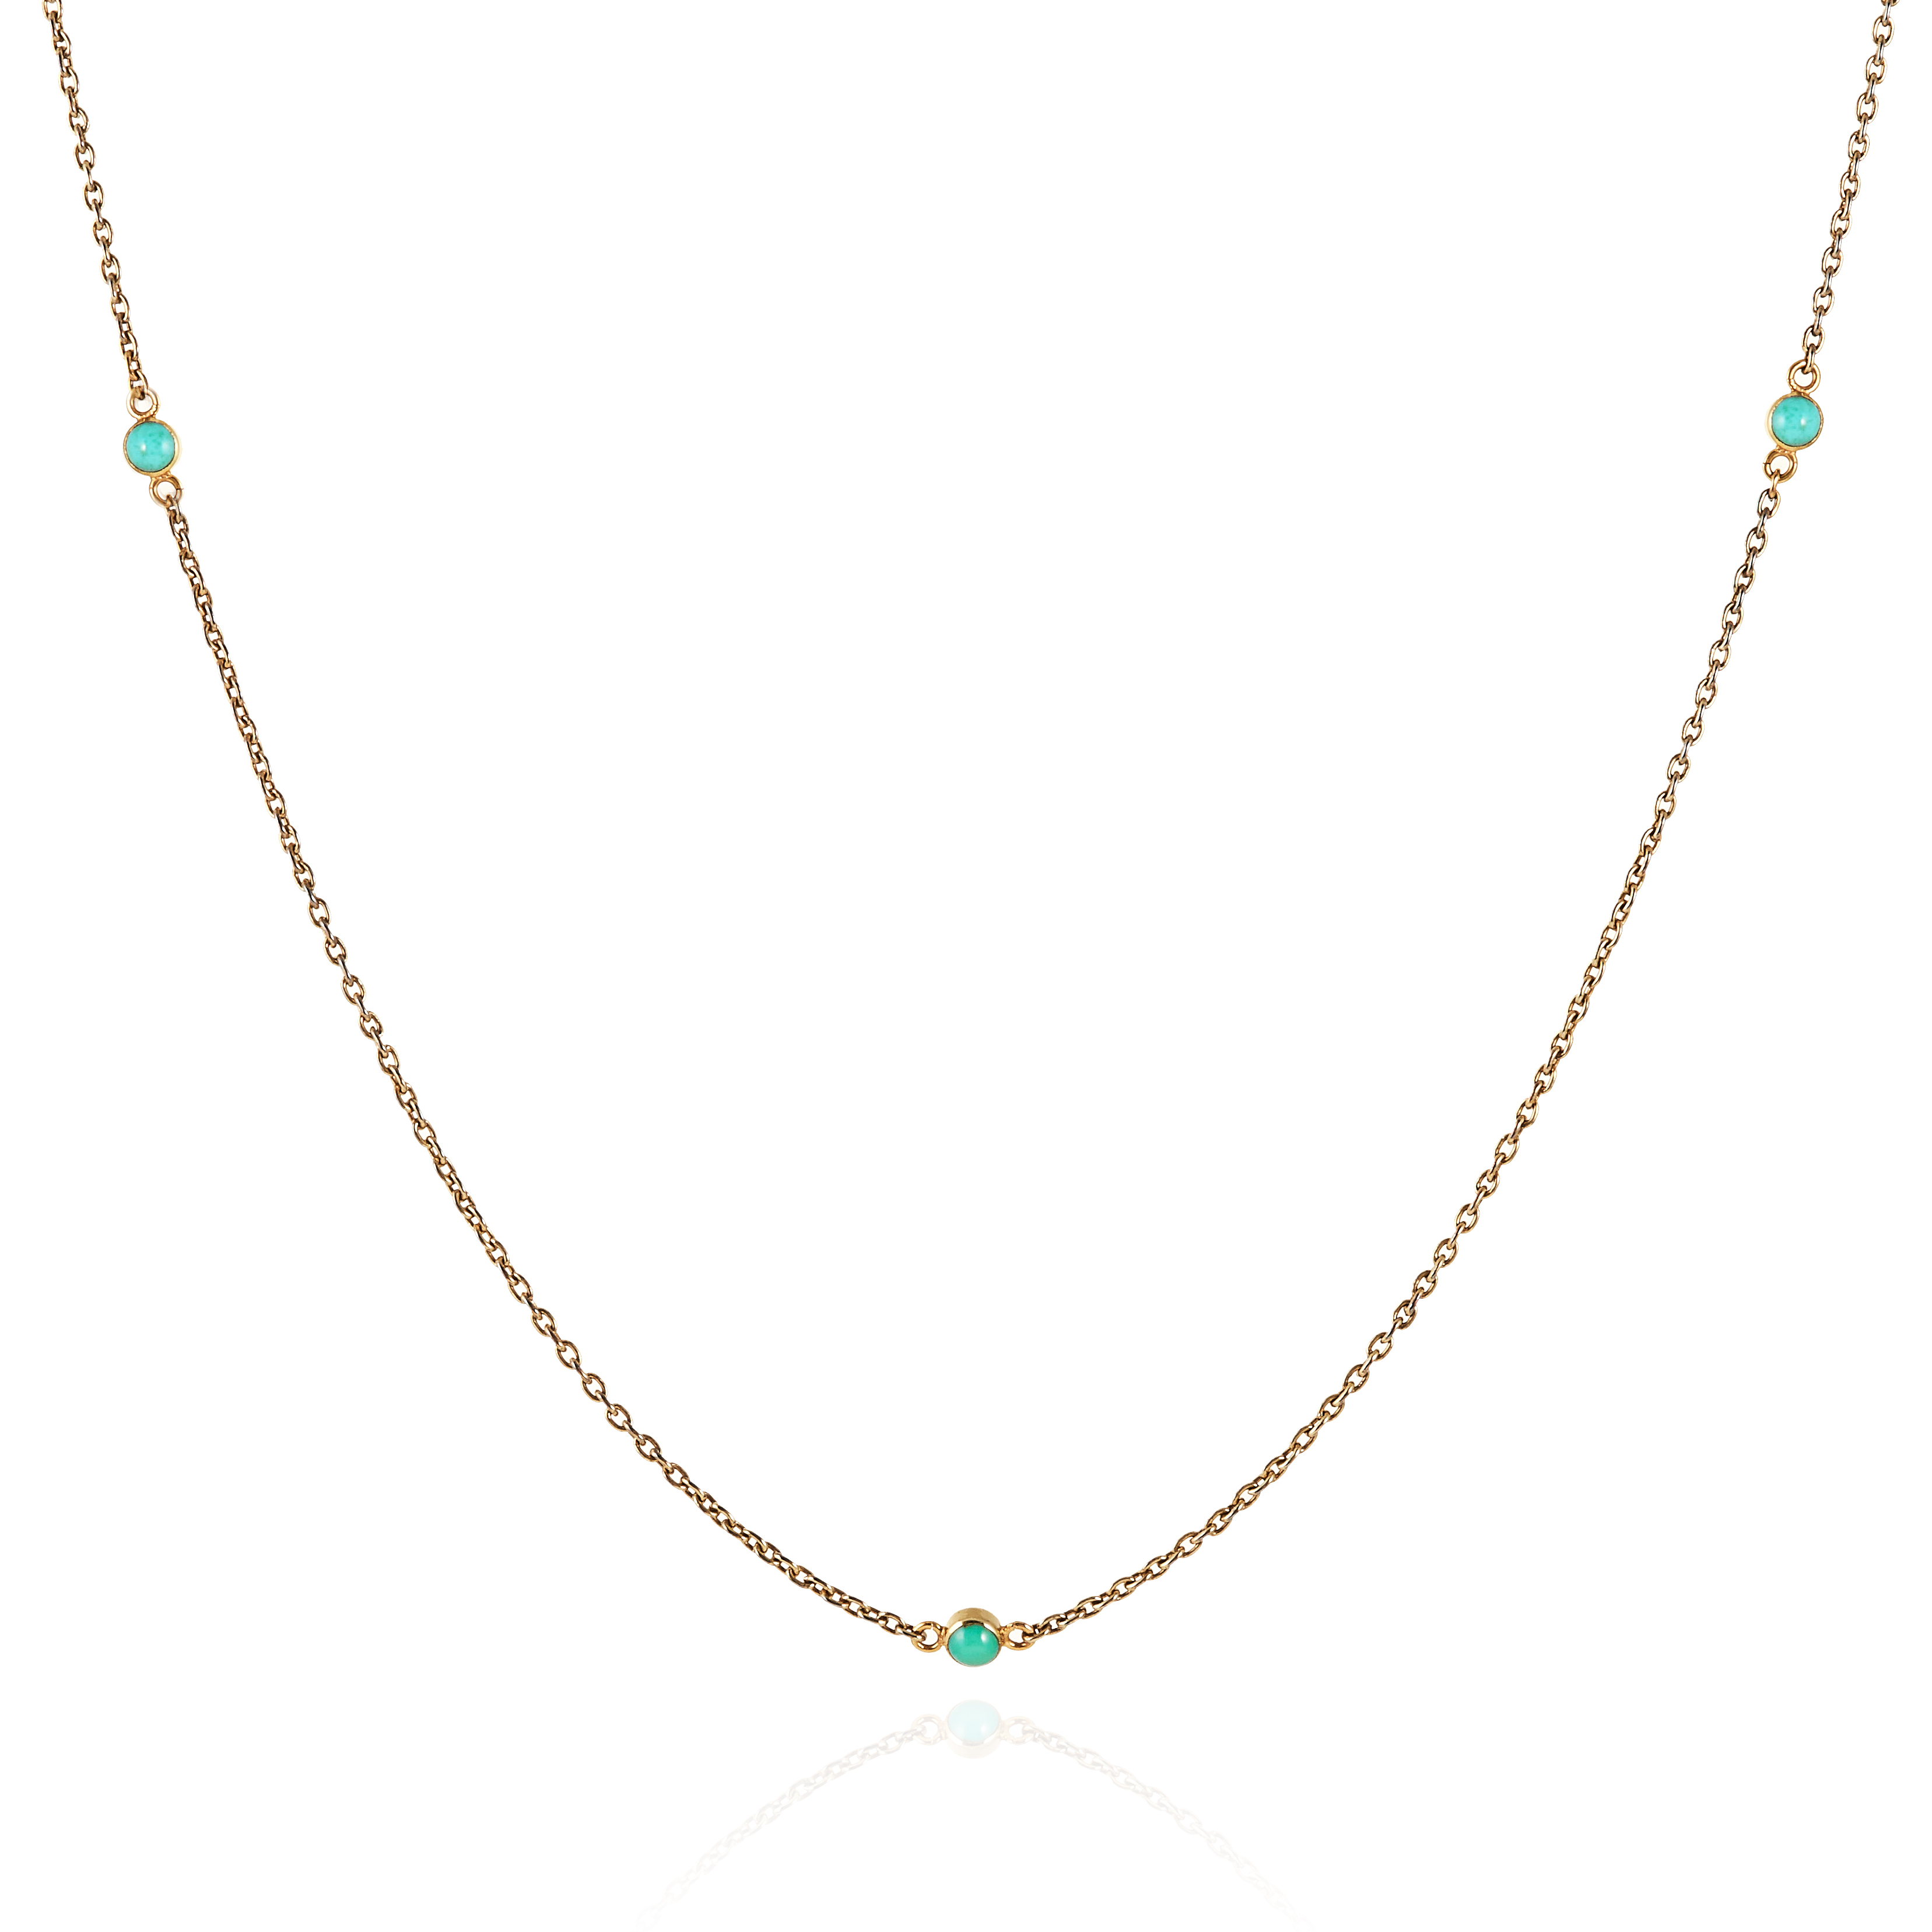 AN ANTIQUE TURQUOISE SPECTACLE CHAIN in 15ct yellow gold, set with twelve cabochon turquoise links